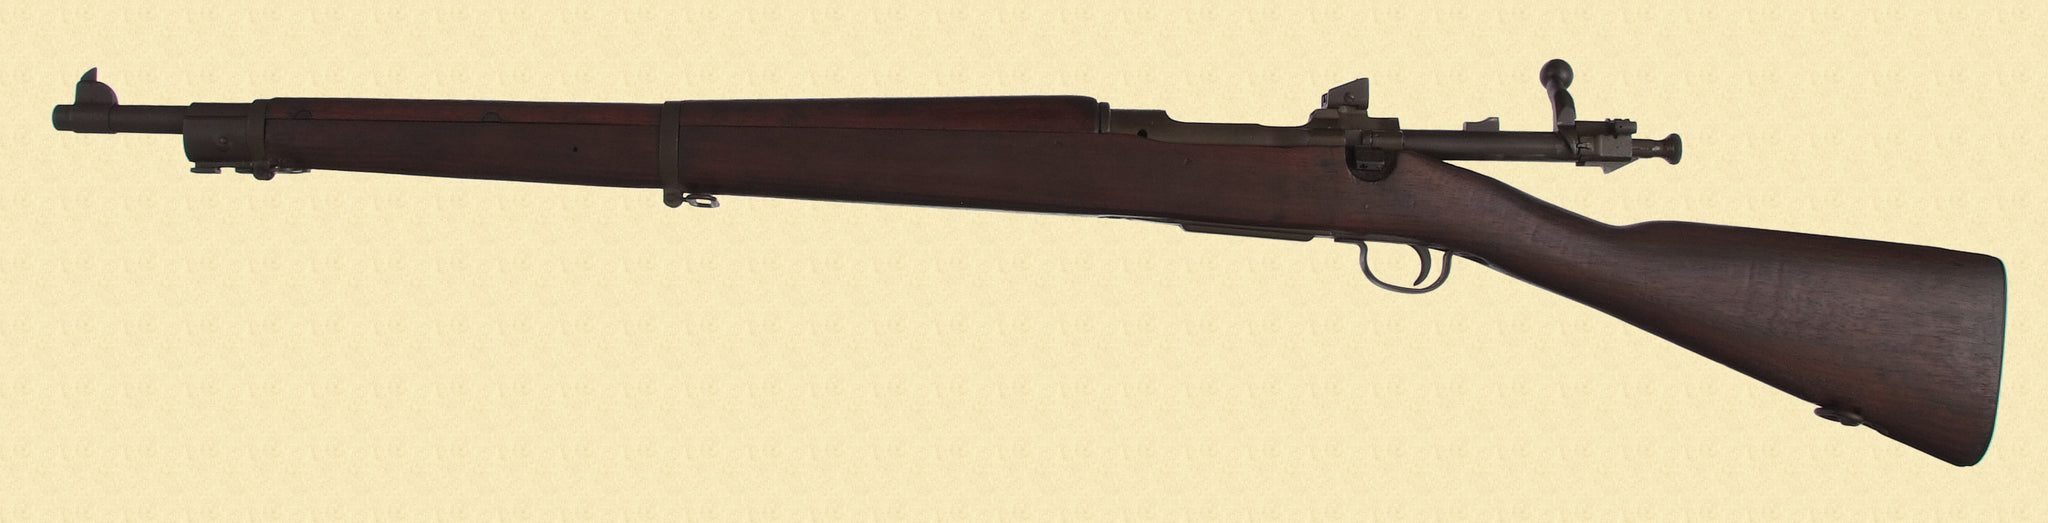 US REMINGTON M1903A3